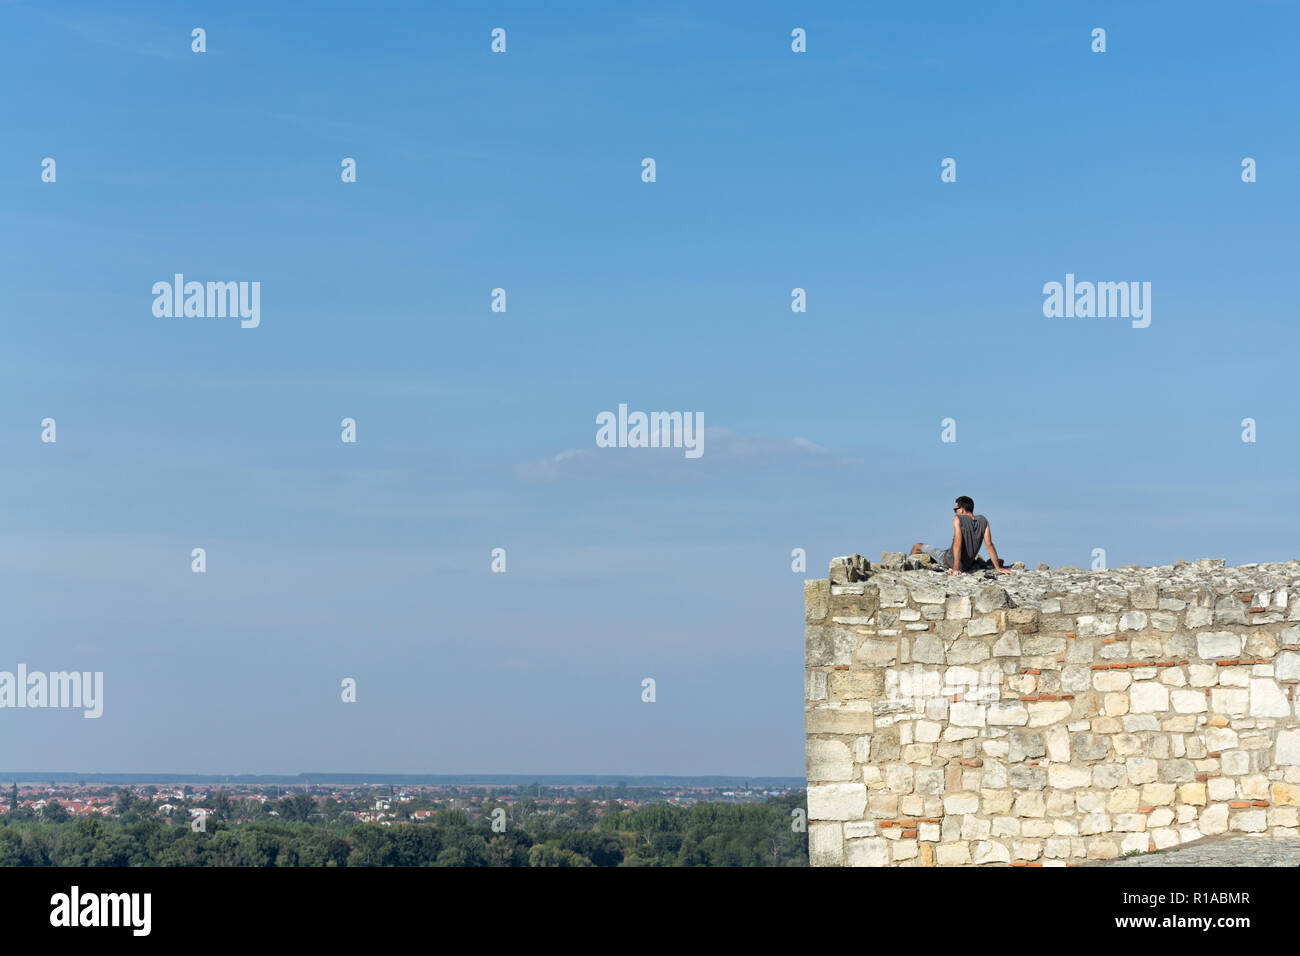 Dark haired young man with sunglasses and ear pods overseeing the cityscape on a bright summer day from the stone watchtower of Kalemegdan fort in Bel - Stock Image